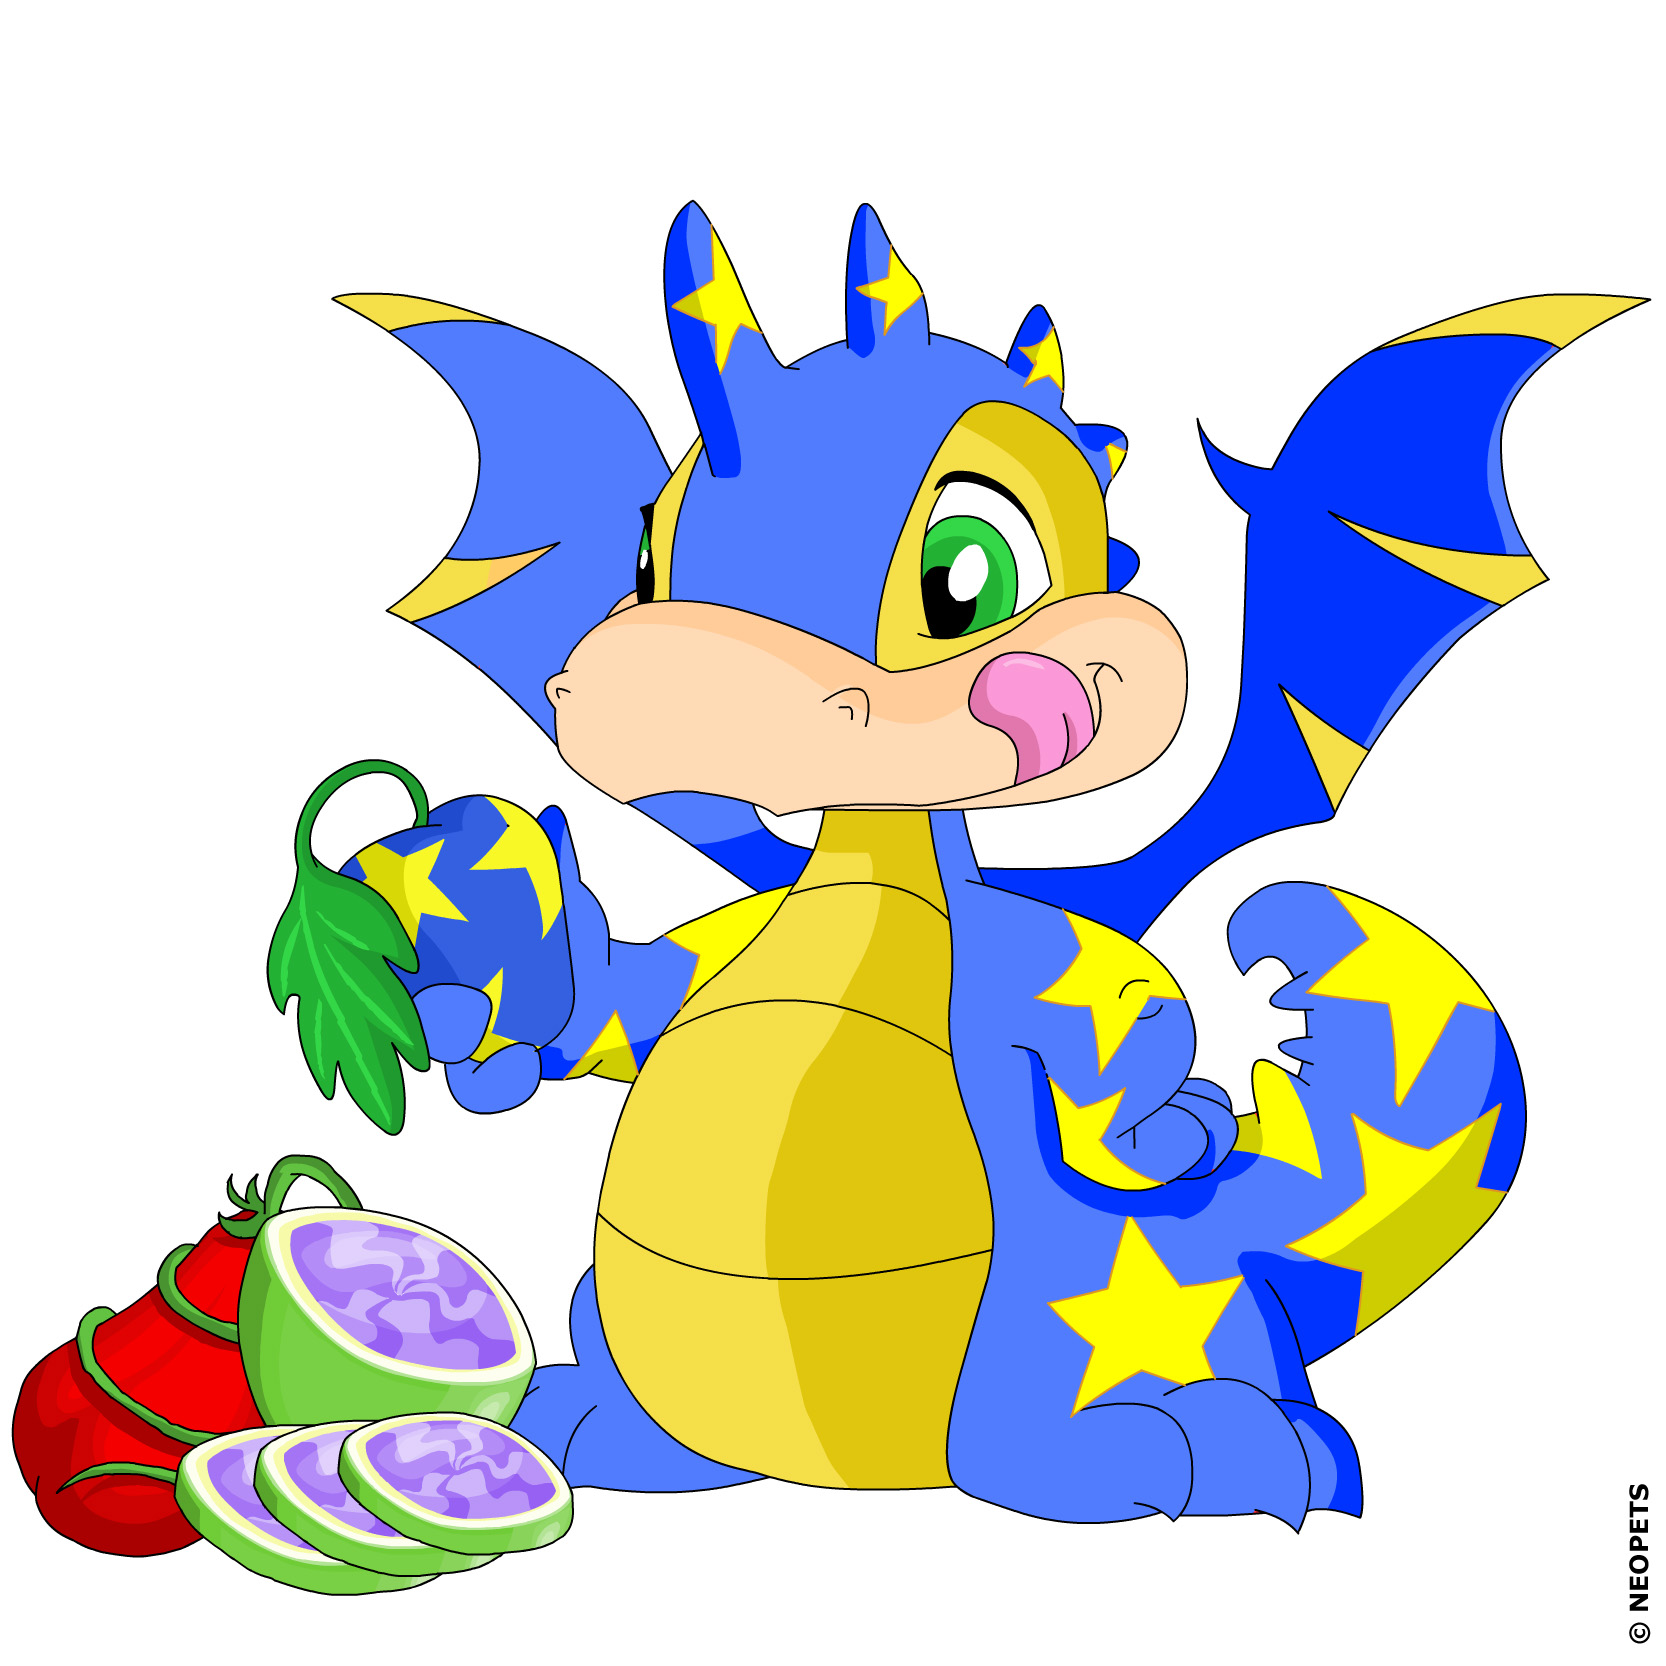 http://images.neopets.com/press/scorchio_5.jpg